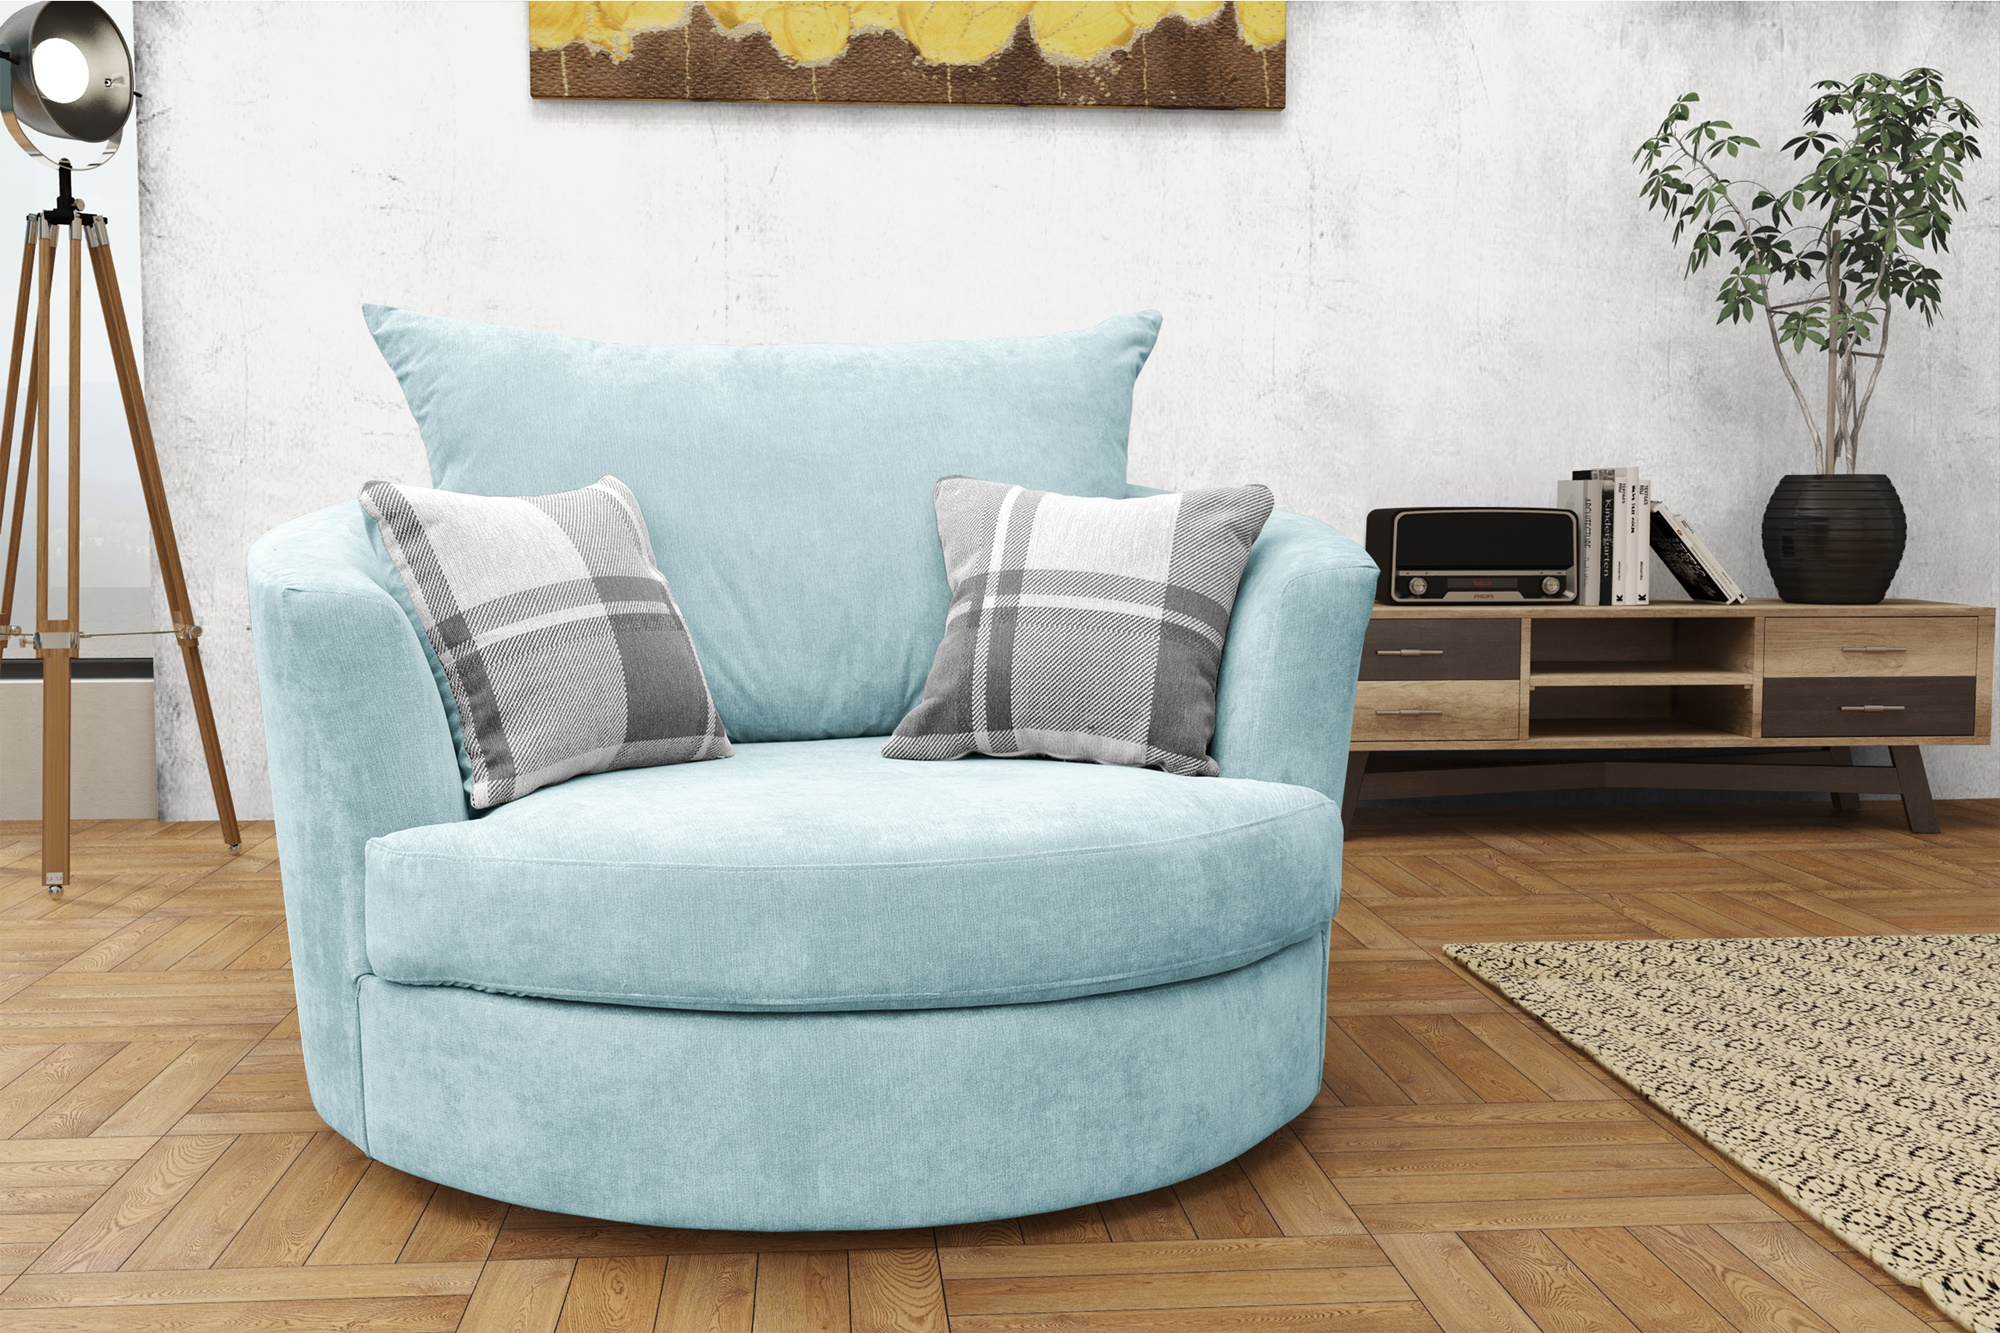 Large swivel round cuddle chair fabric grey cream brown living room settee ebay for Fabric swivel armchairs for living room